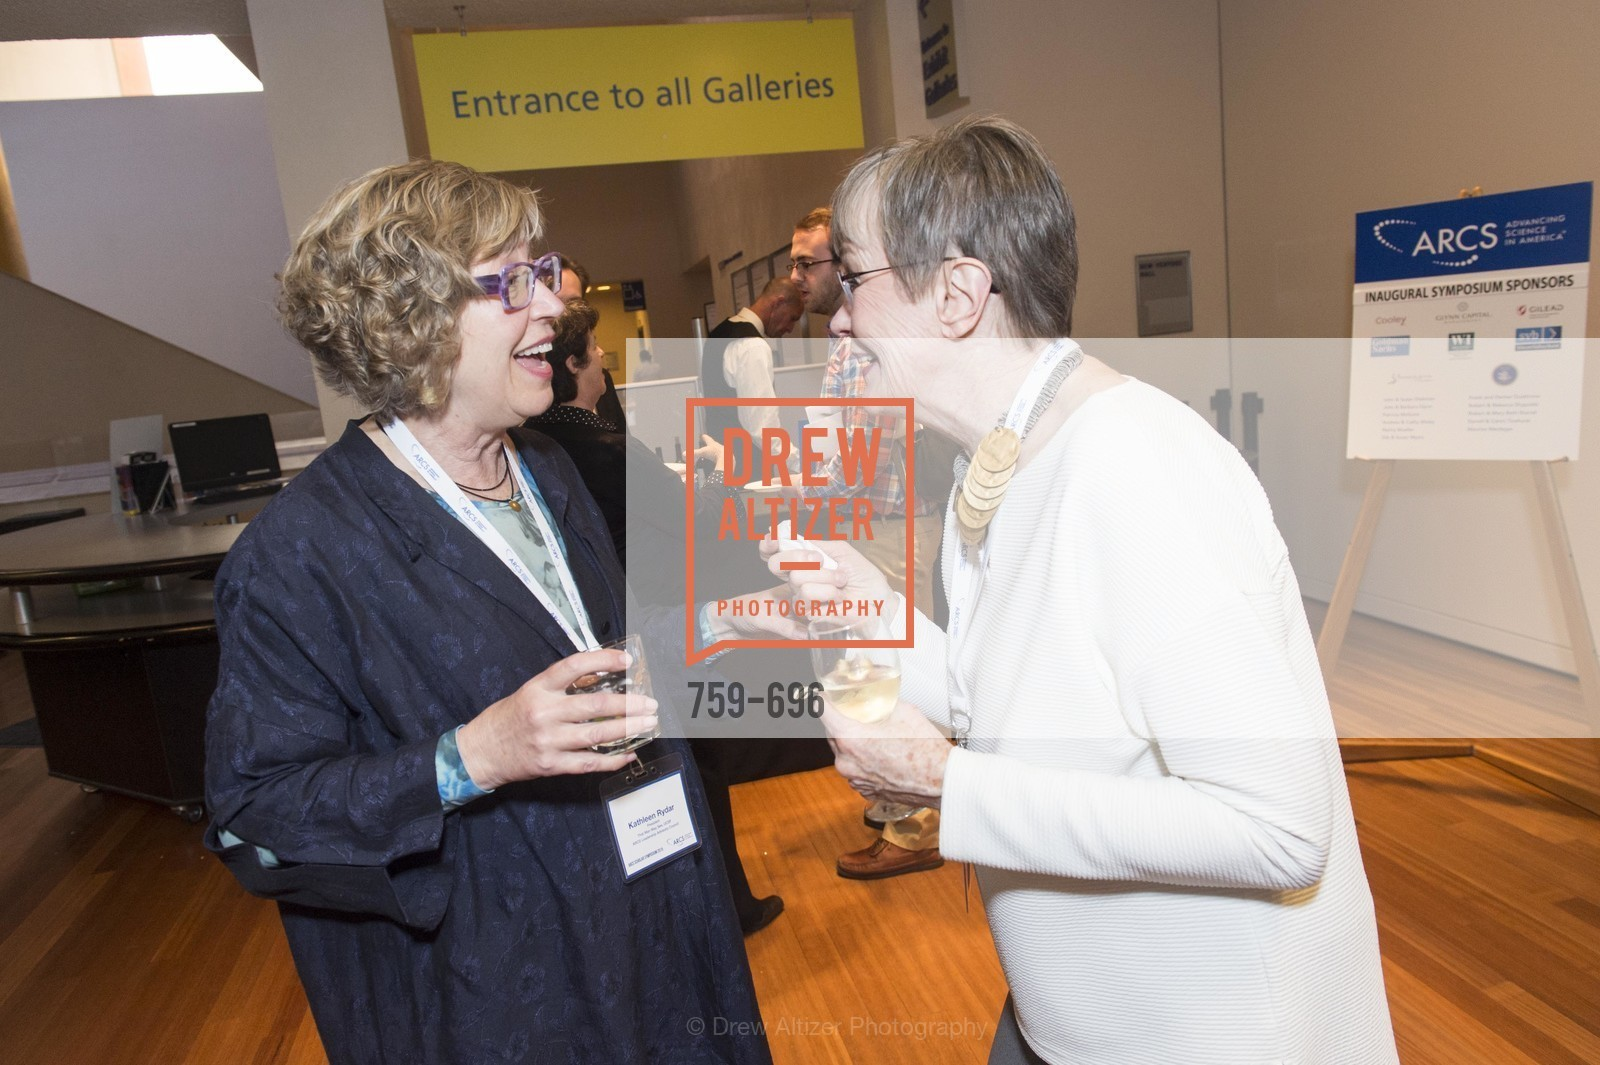 Kathleen Rydar, Marybeth Starzel, ARCS FOUNDATION Scholar Symposium, US, May 4th, 2015,Drew Altizer, Drew Altizer Photography, full-service agency, private events, San Francisco photographer, photographer california